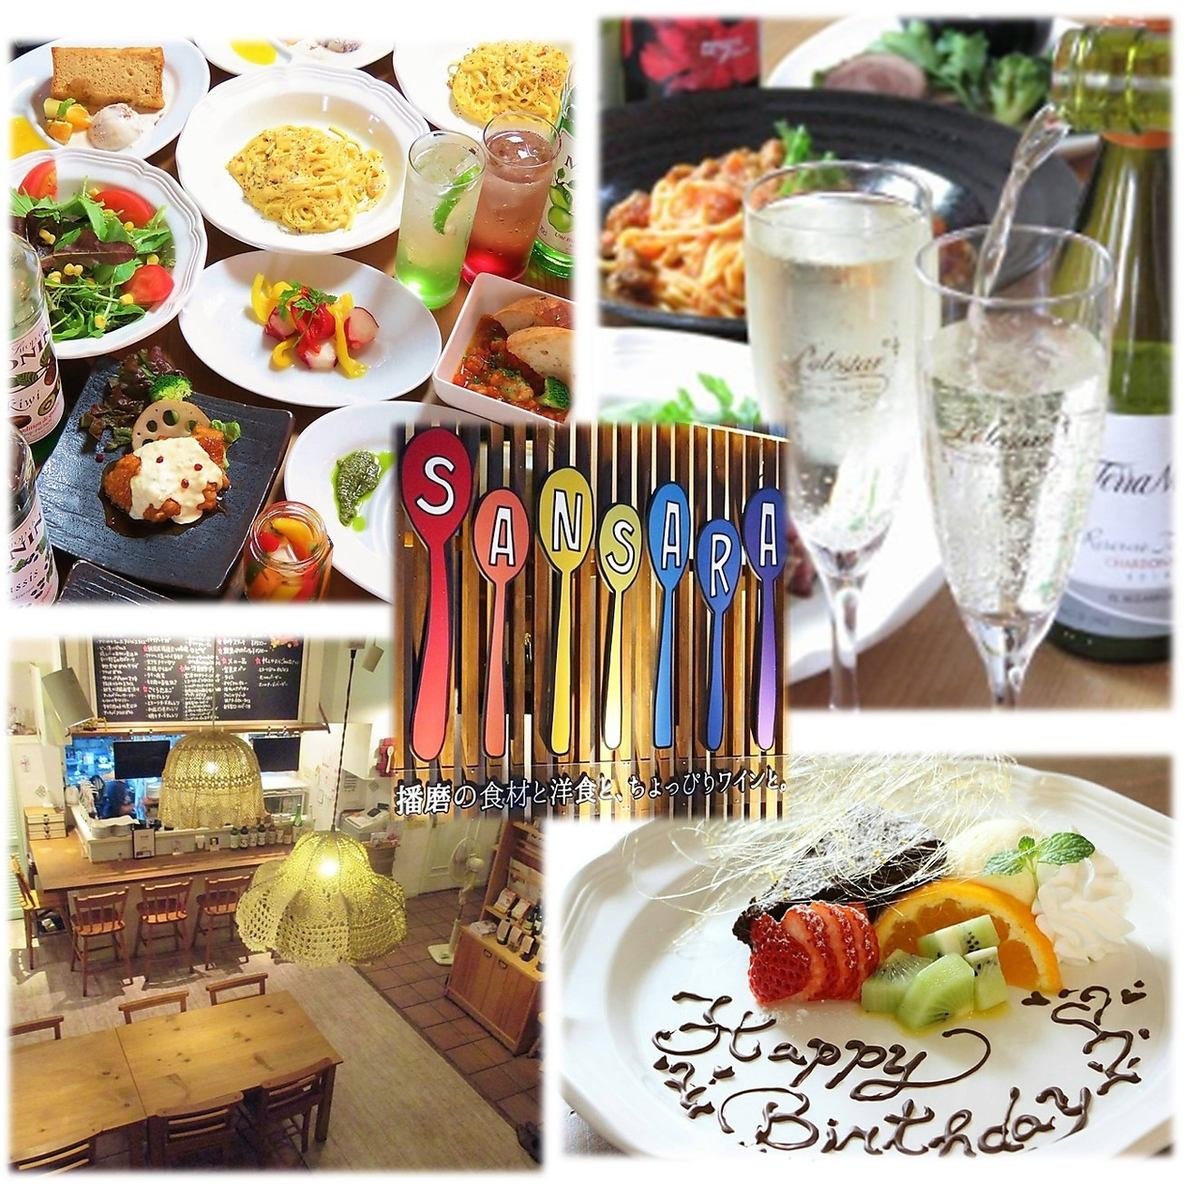 """A trendy shop in the media ☆ A stylish """"Western food bistro"""" that you can taste the ingredients of Tatsu!"""